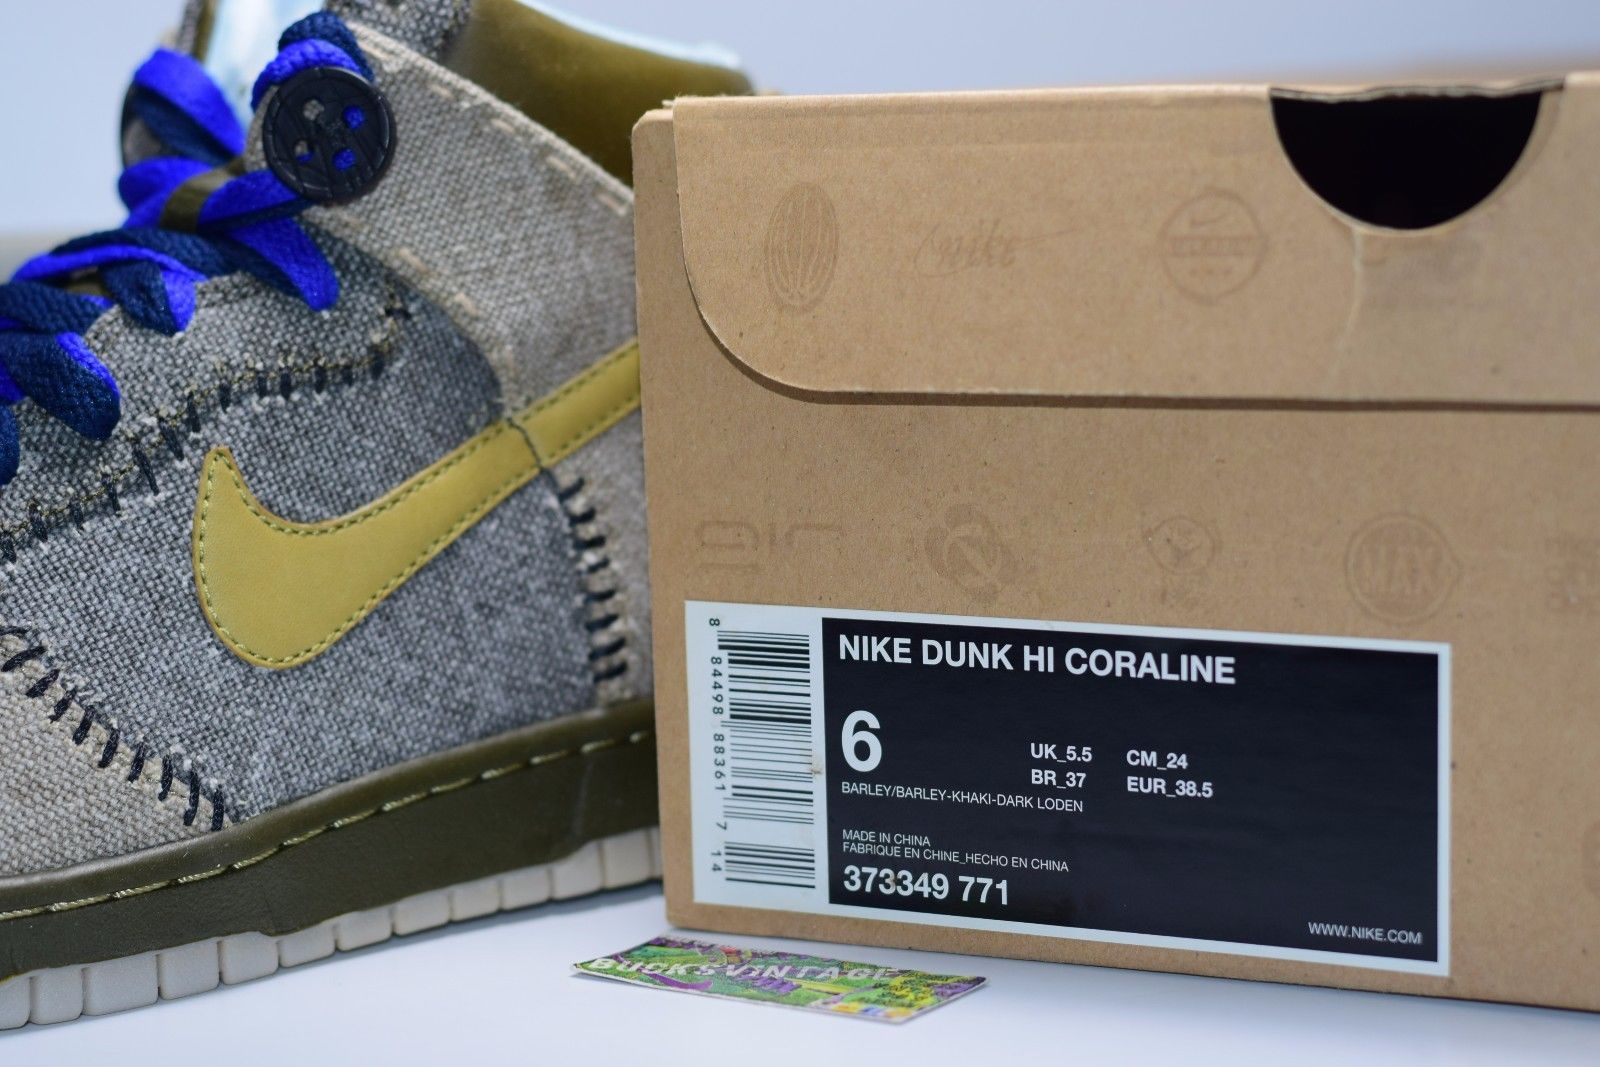 new product 5bd3b f0d14 ... sale size 6 new 2009 nike dunk high coraline 373349 771 thumbnail 4  1fba1 e095a